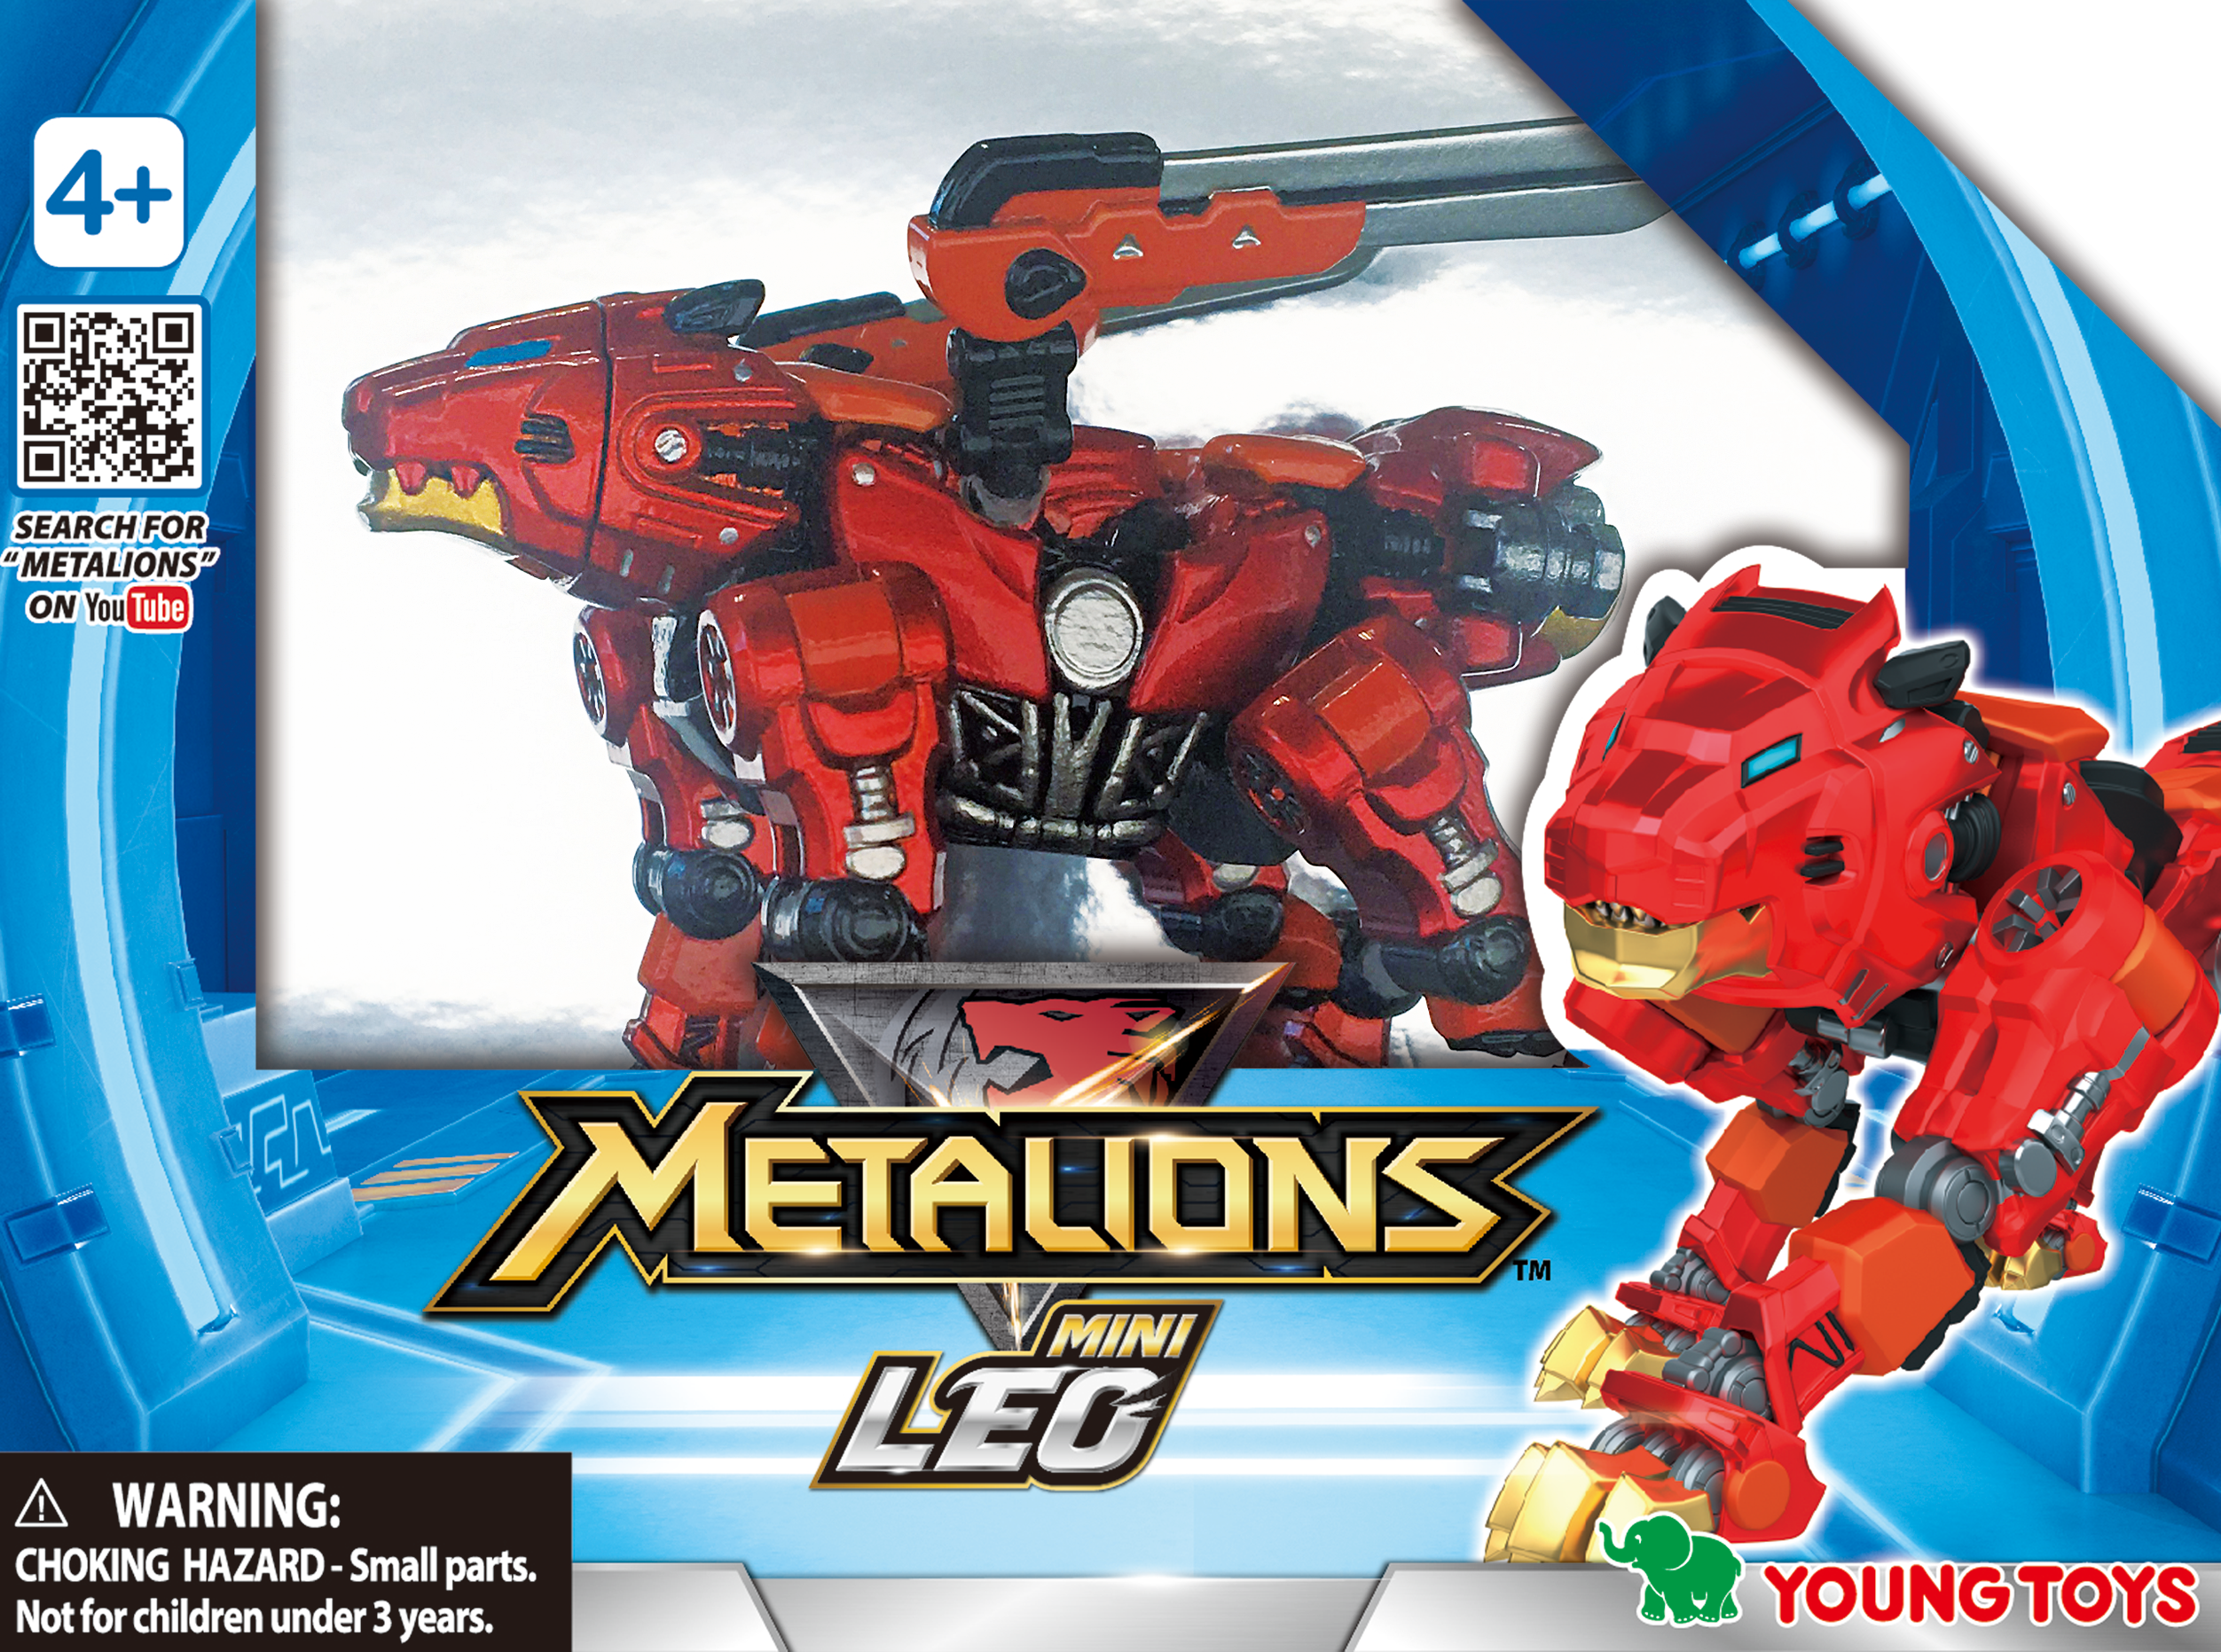 YOUNG TOYS METALIONS Mini Leo Action Figure